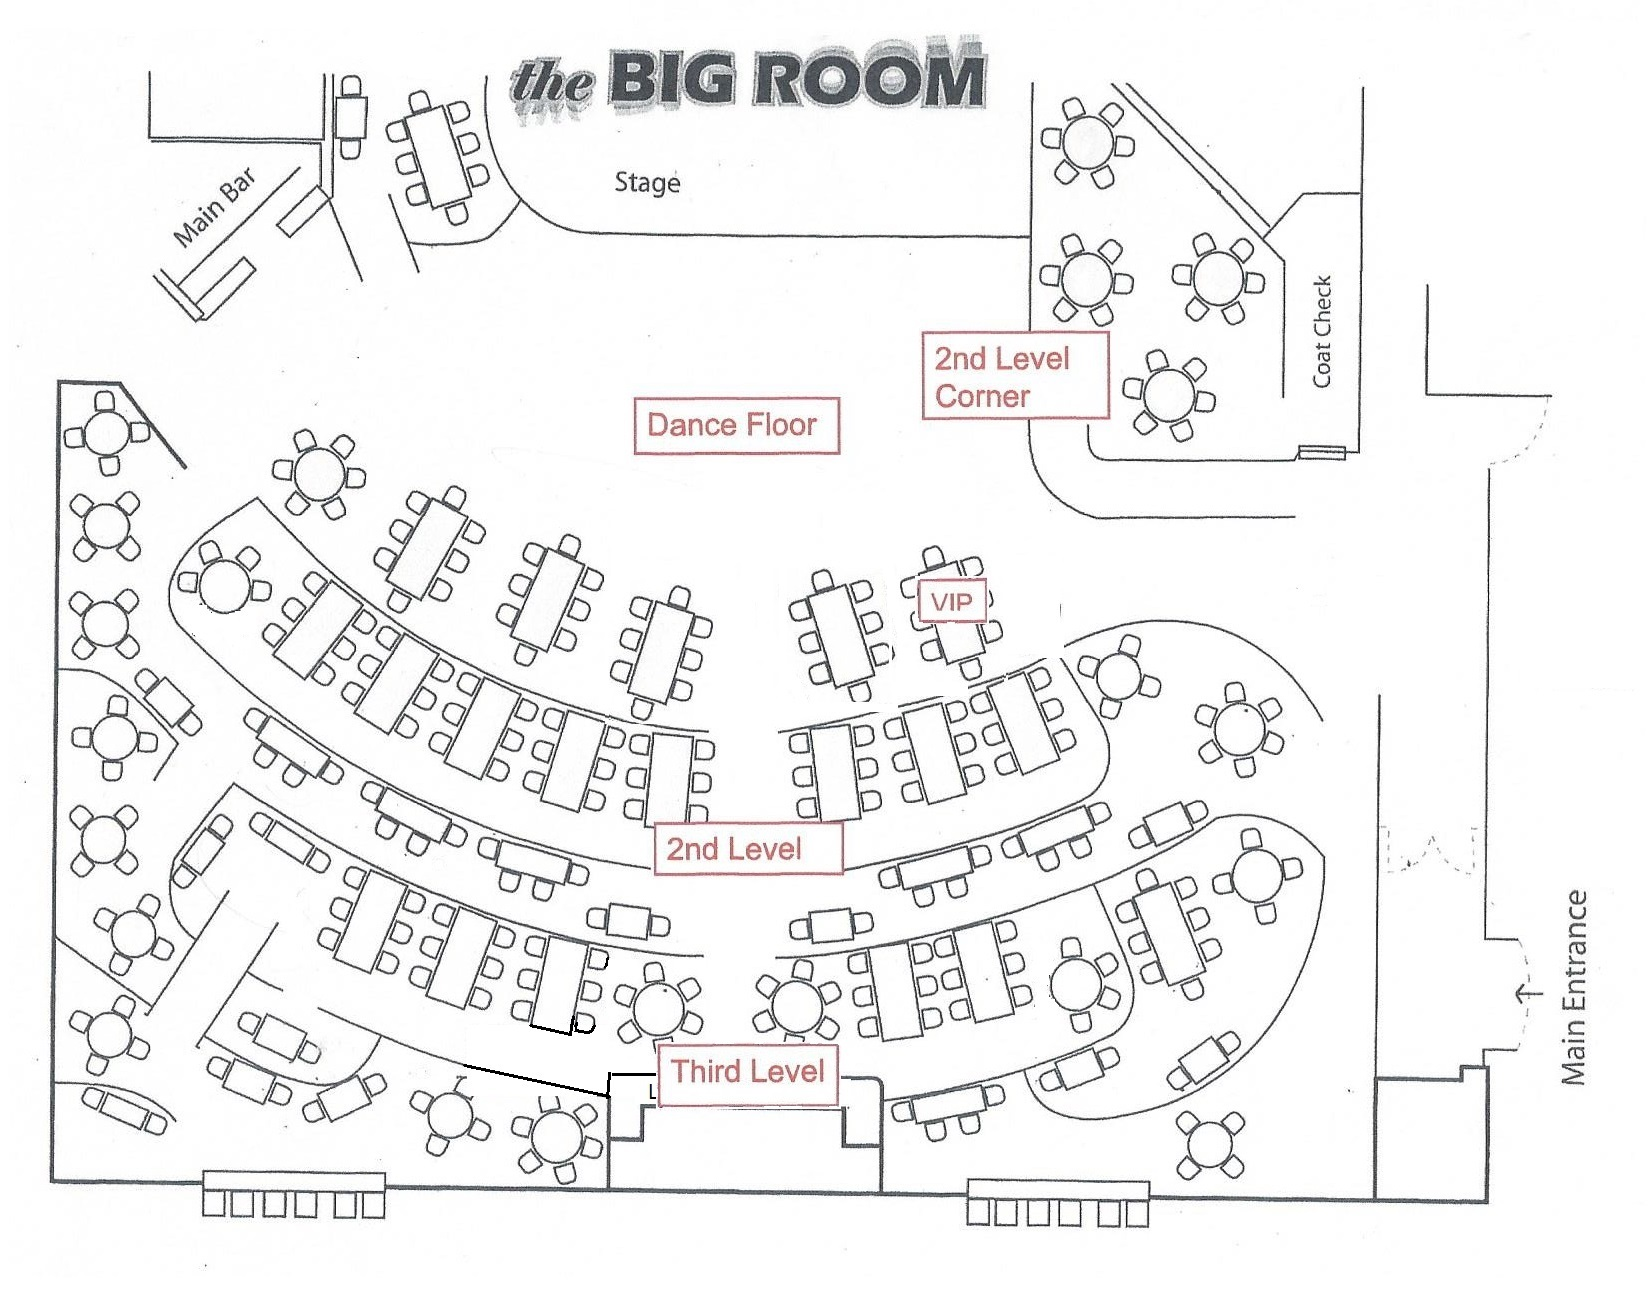 Sierra Nevada Big Room 2018 Durham Gala Seating Chart, updated 1-8-2018